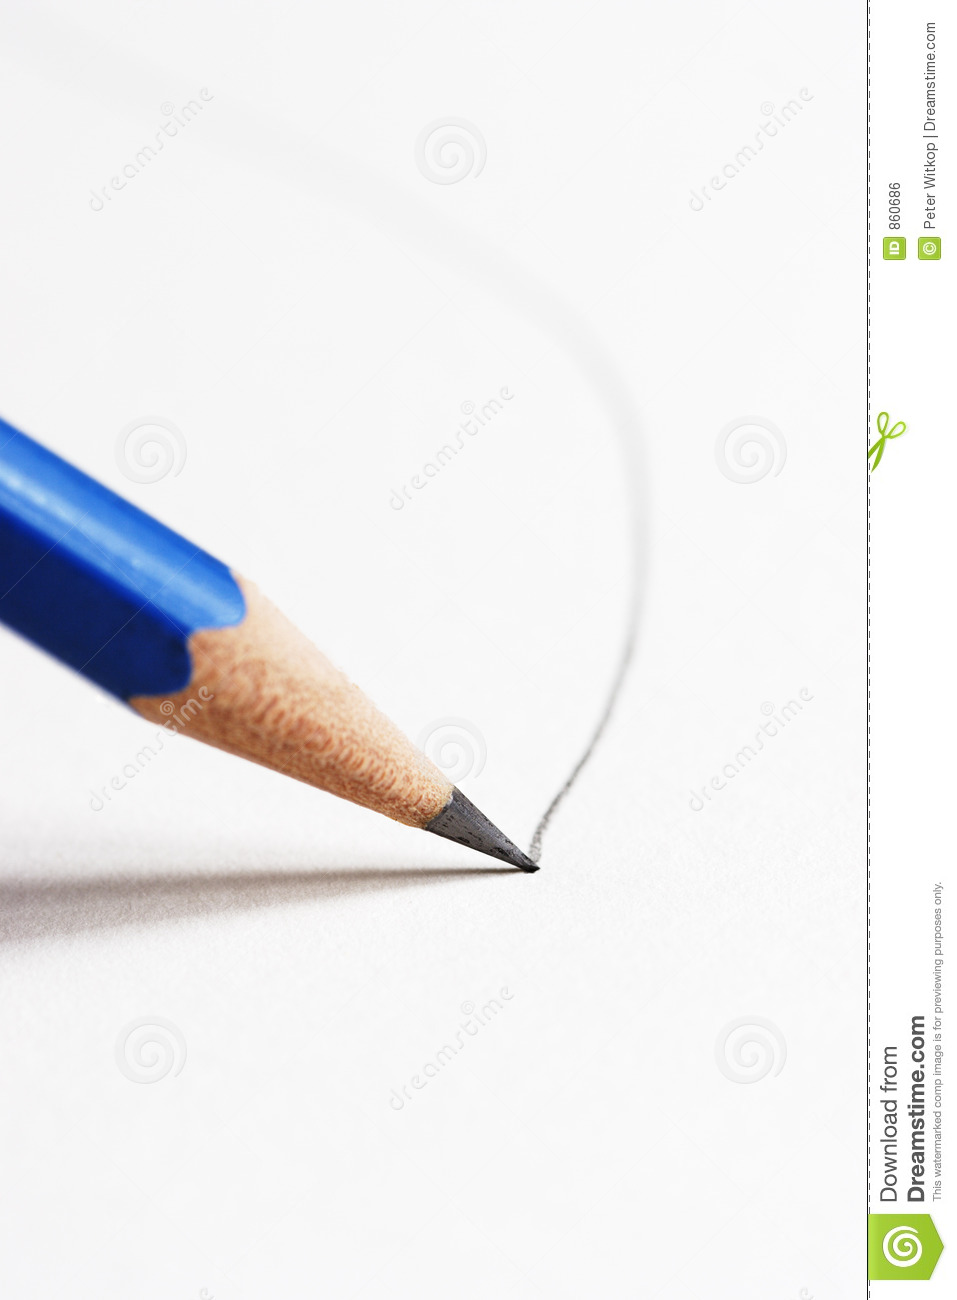 Line Drawing Pencil : Pencil drawing line royalty free stock image